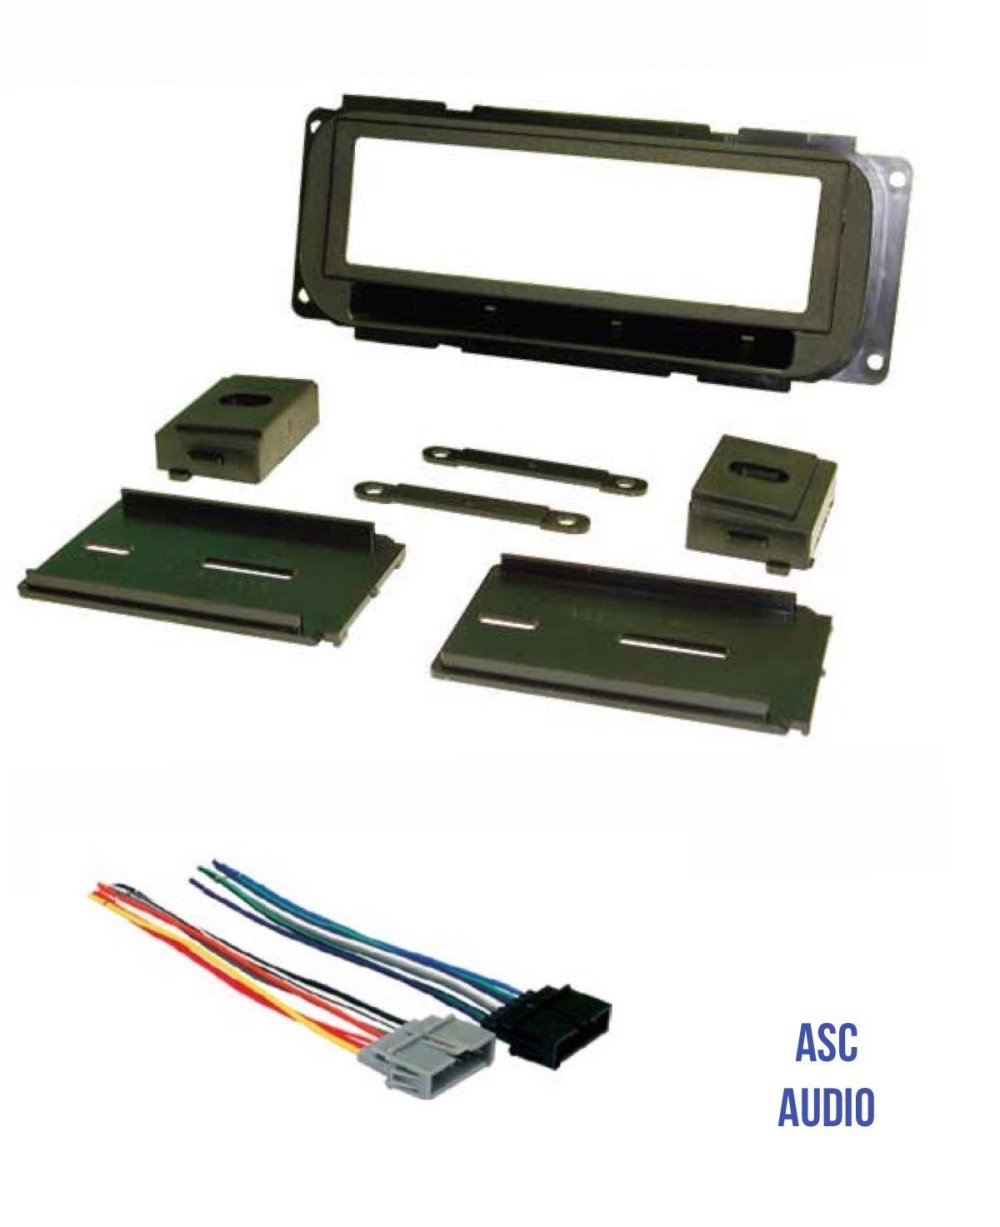 medium resolution of get quotations asc audio car stereo dash kit and wire harness to install a single din radio for